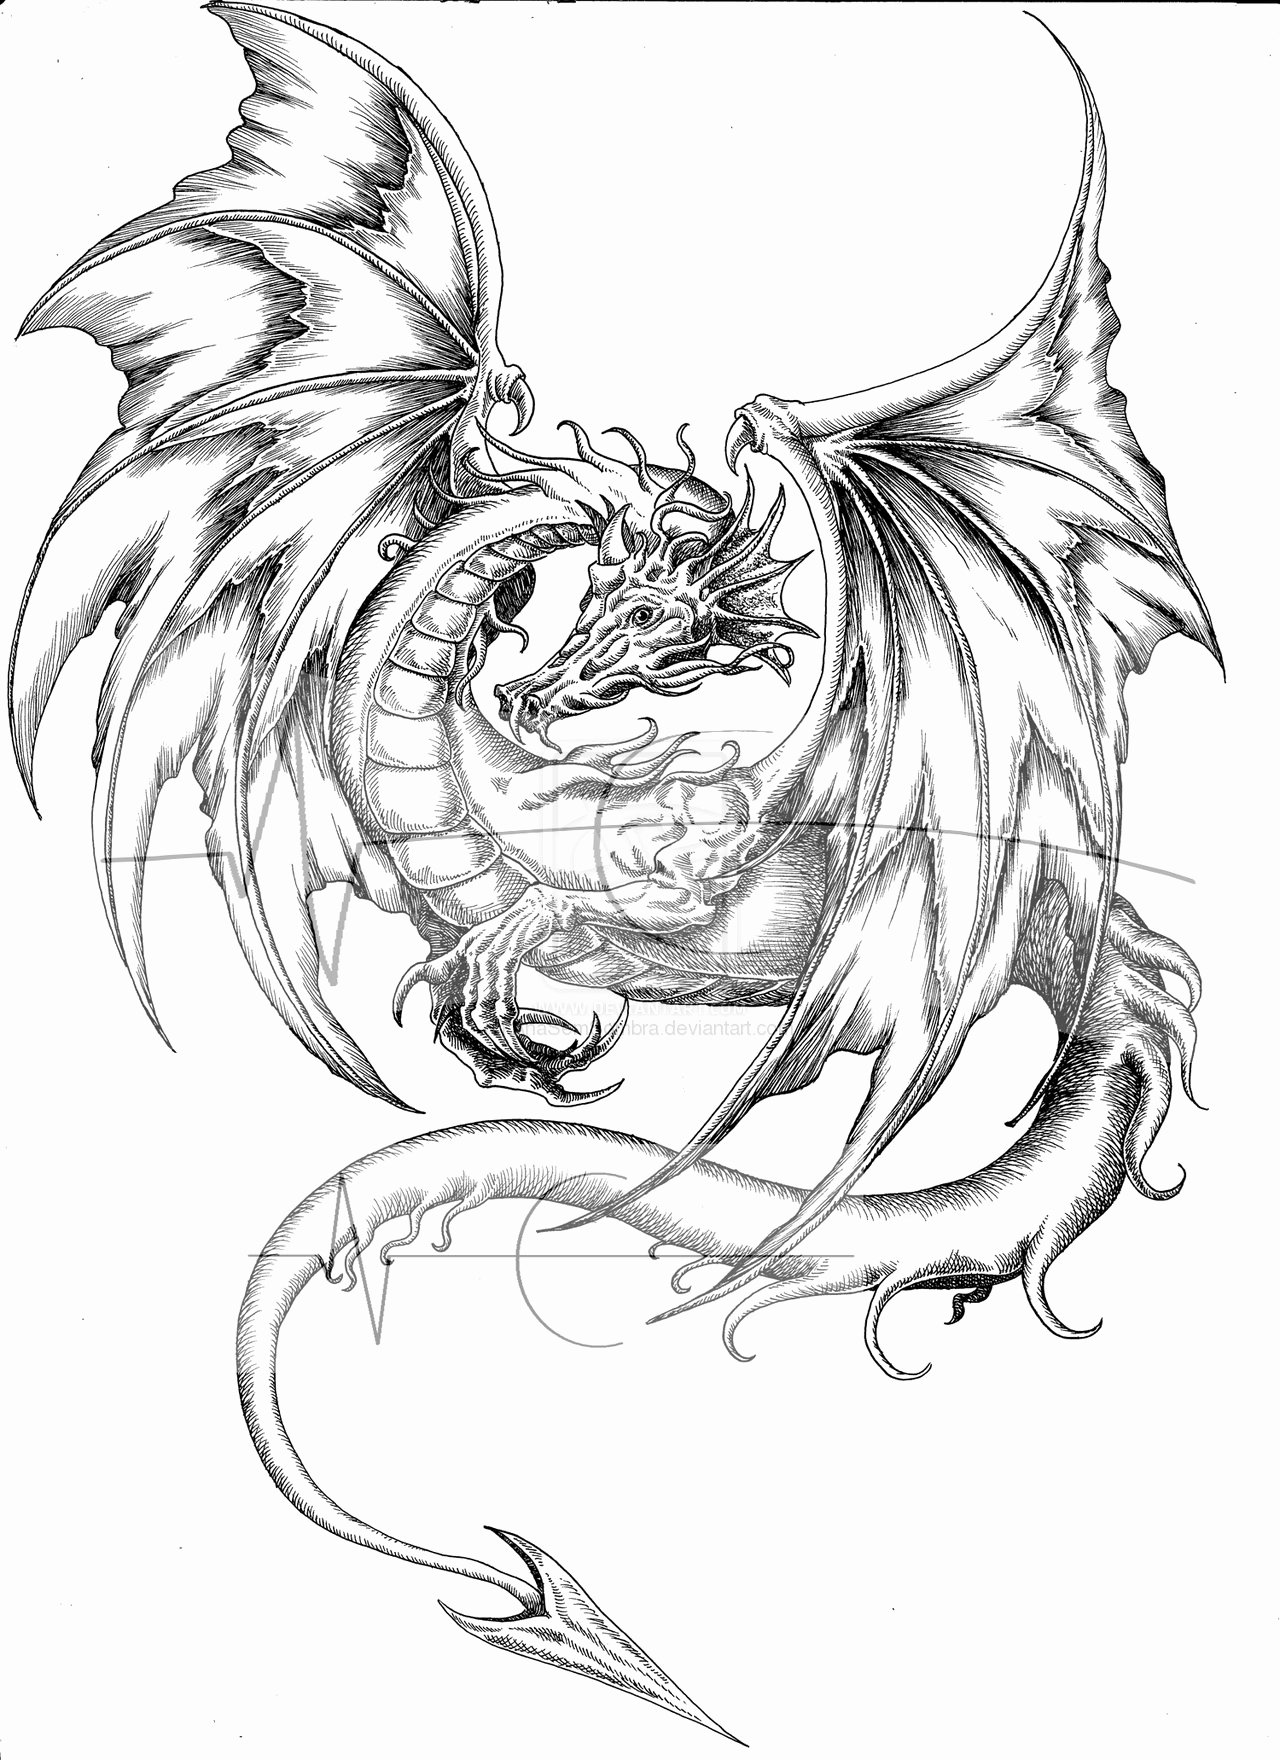 Wings Of Fire Dragon Coloring Pages : wings, dragon, coloring, pages, Wings, Dragon, Coloring, Pages, GetDrawings, Download